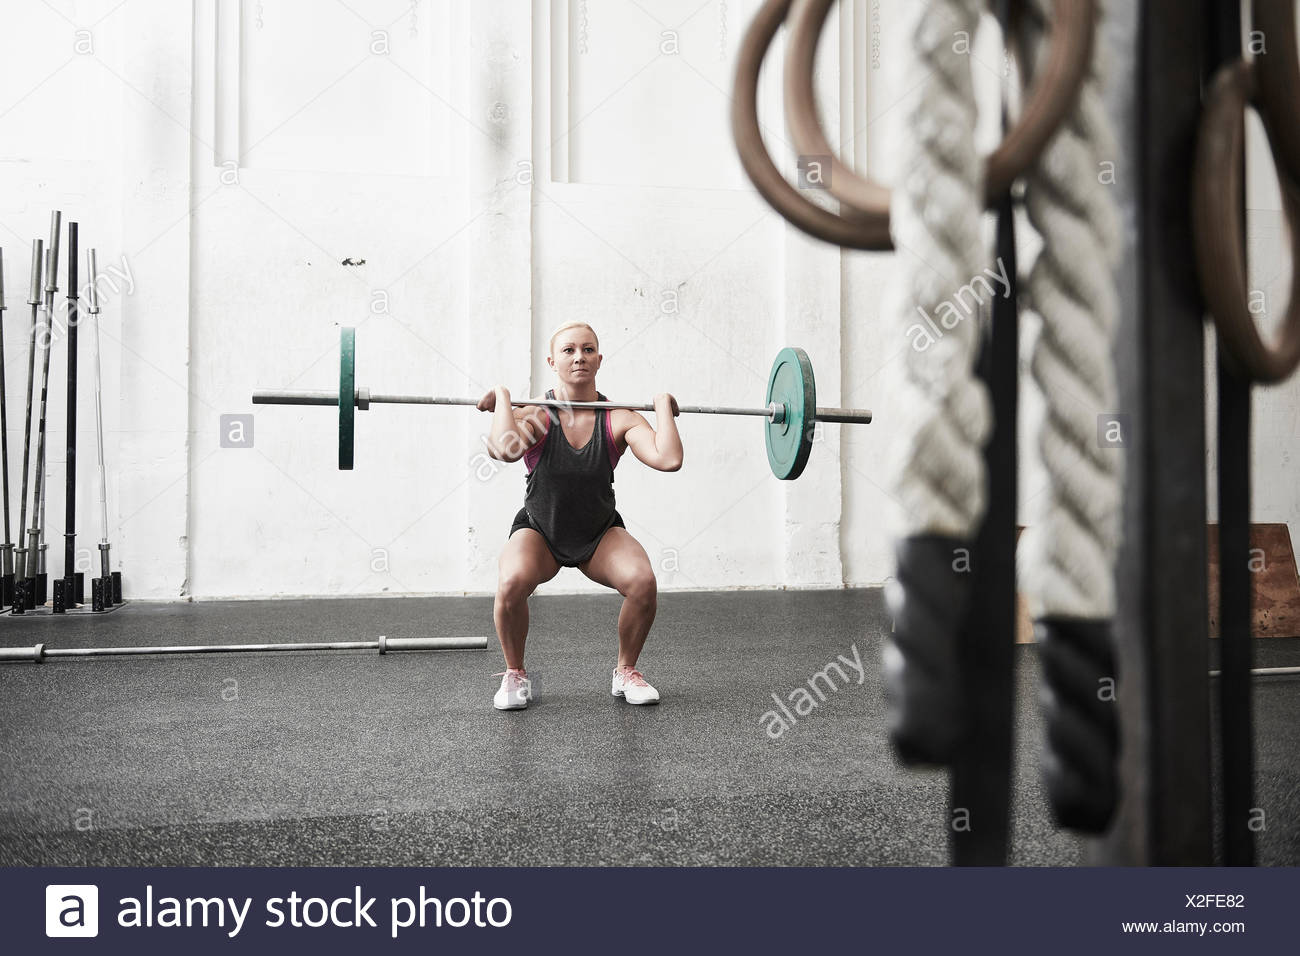 Woman lifting barbell in cross training gym - Stock Image